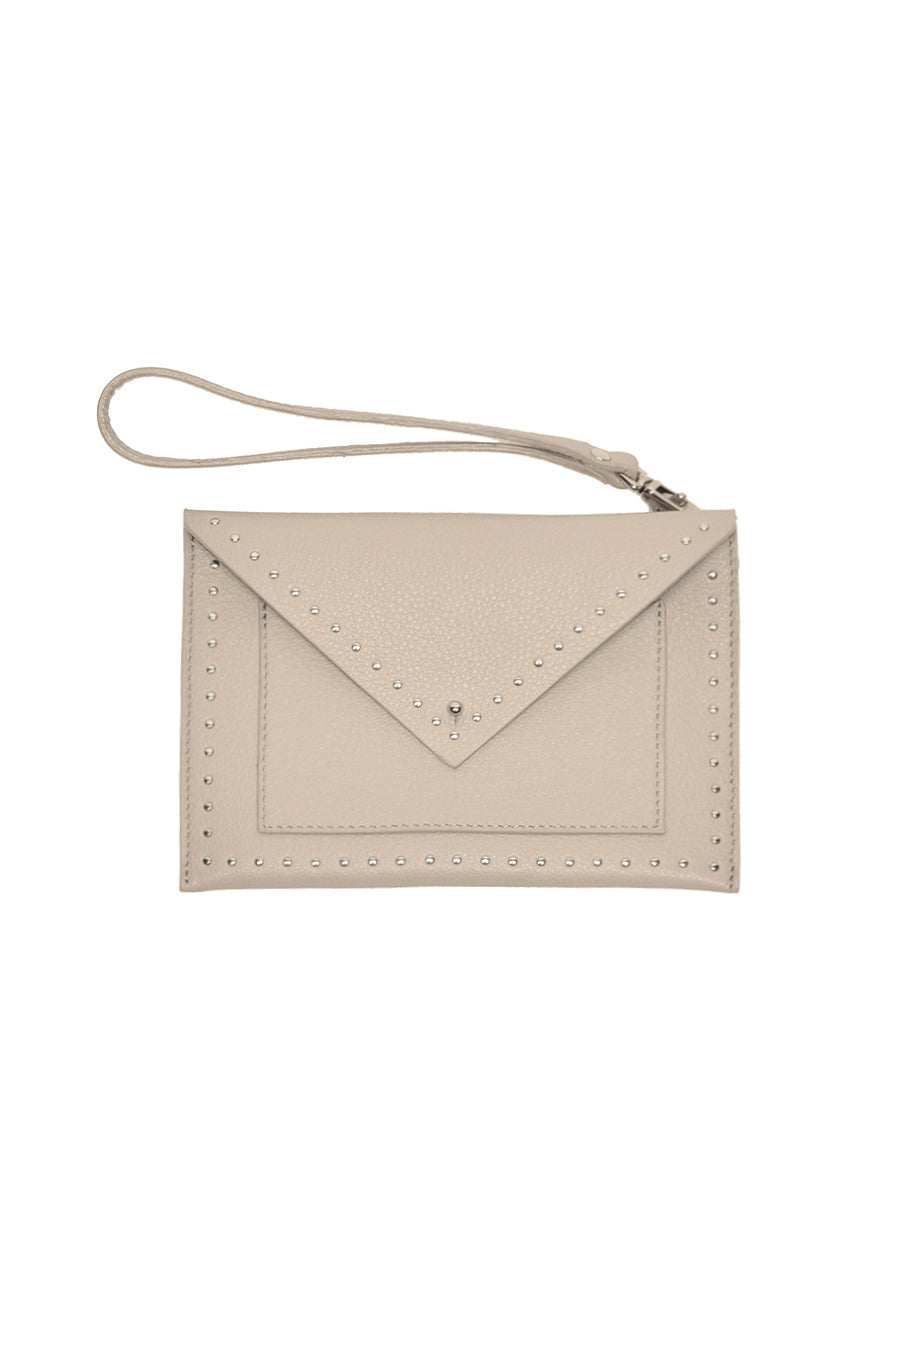 Studded envelope in beige leather with card pocket leather pouch